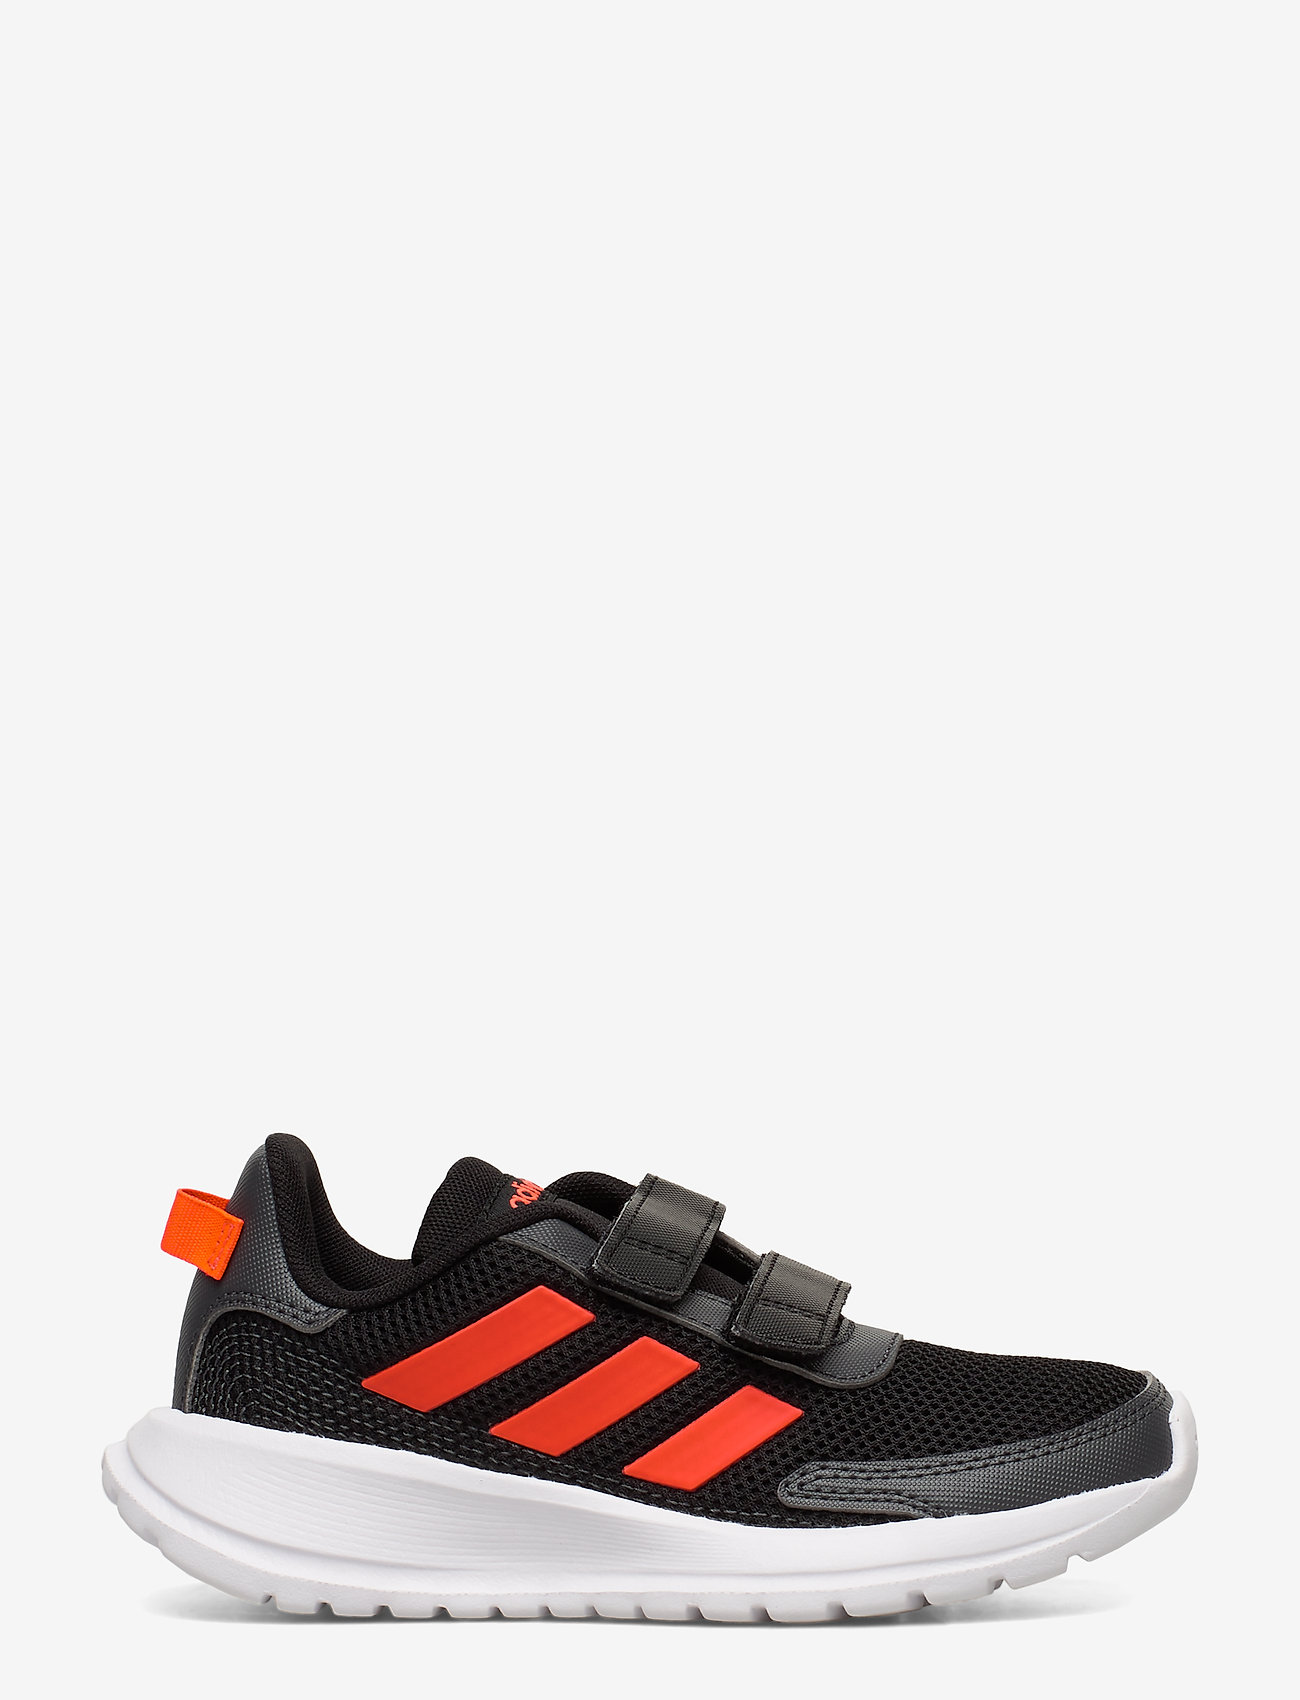 adidas Performance - TENSAUR RUN C - trainingsschuhe - cblack/solred/gresix - 1